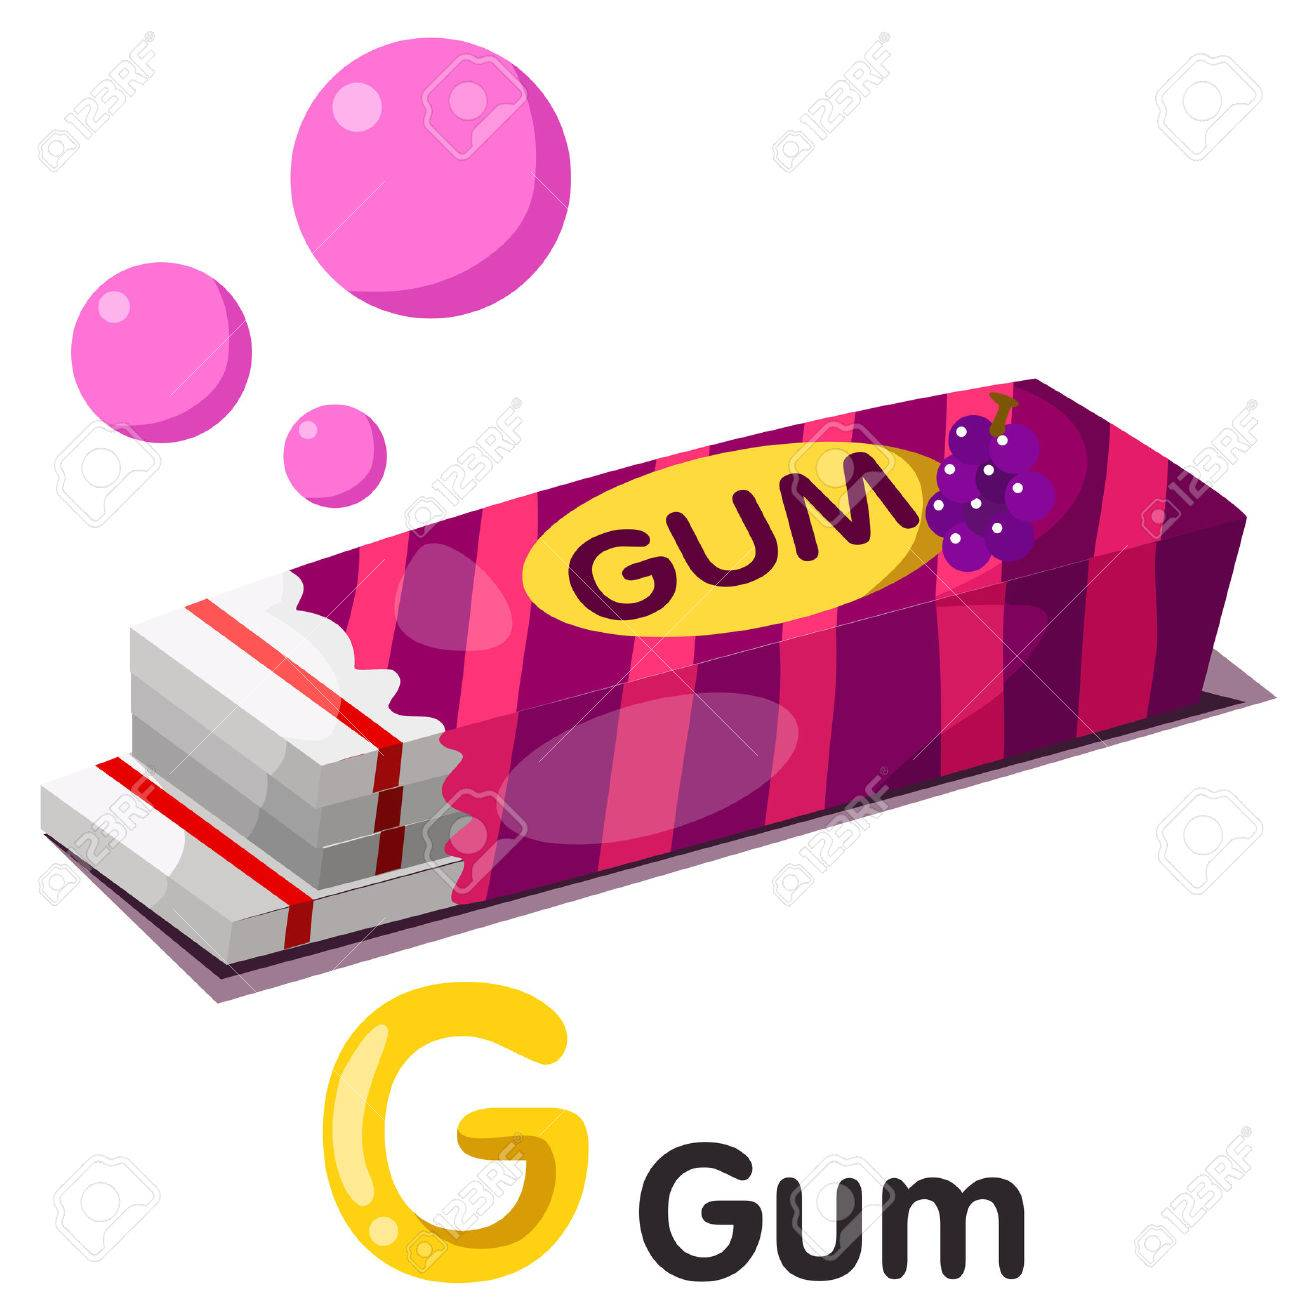 1 979 bubble gum stock illustrations cliparts and royalty free rh 123rf com guam clip art gun clipart images